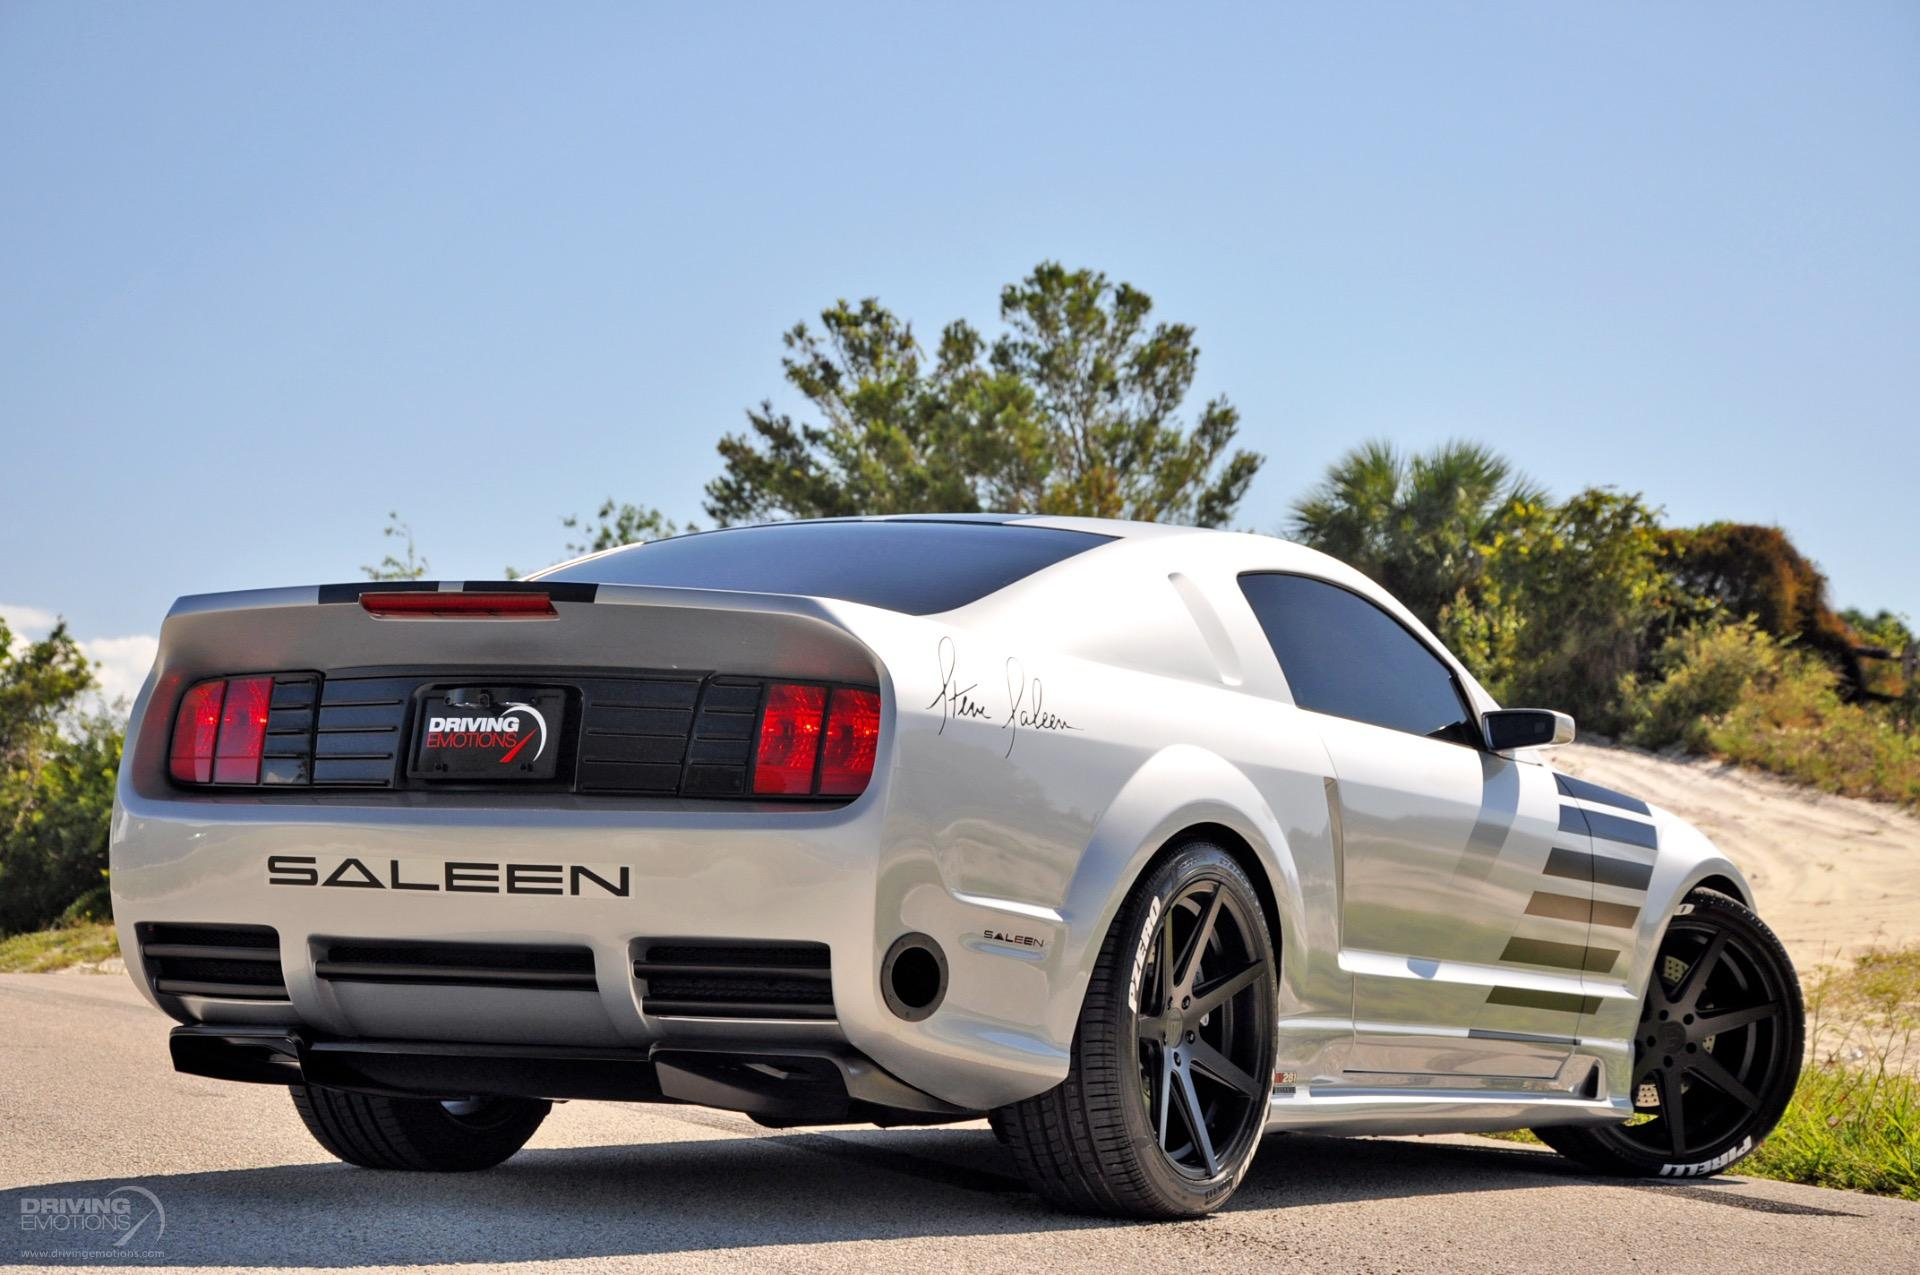 2005 Ford Mustang Saleen S281 SC Coupe Stock # 5983 for sale near ...